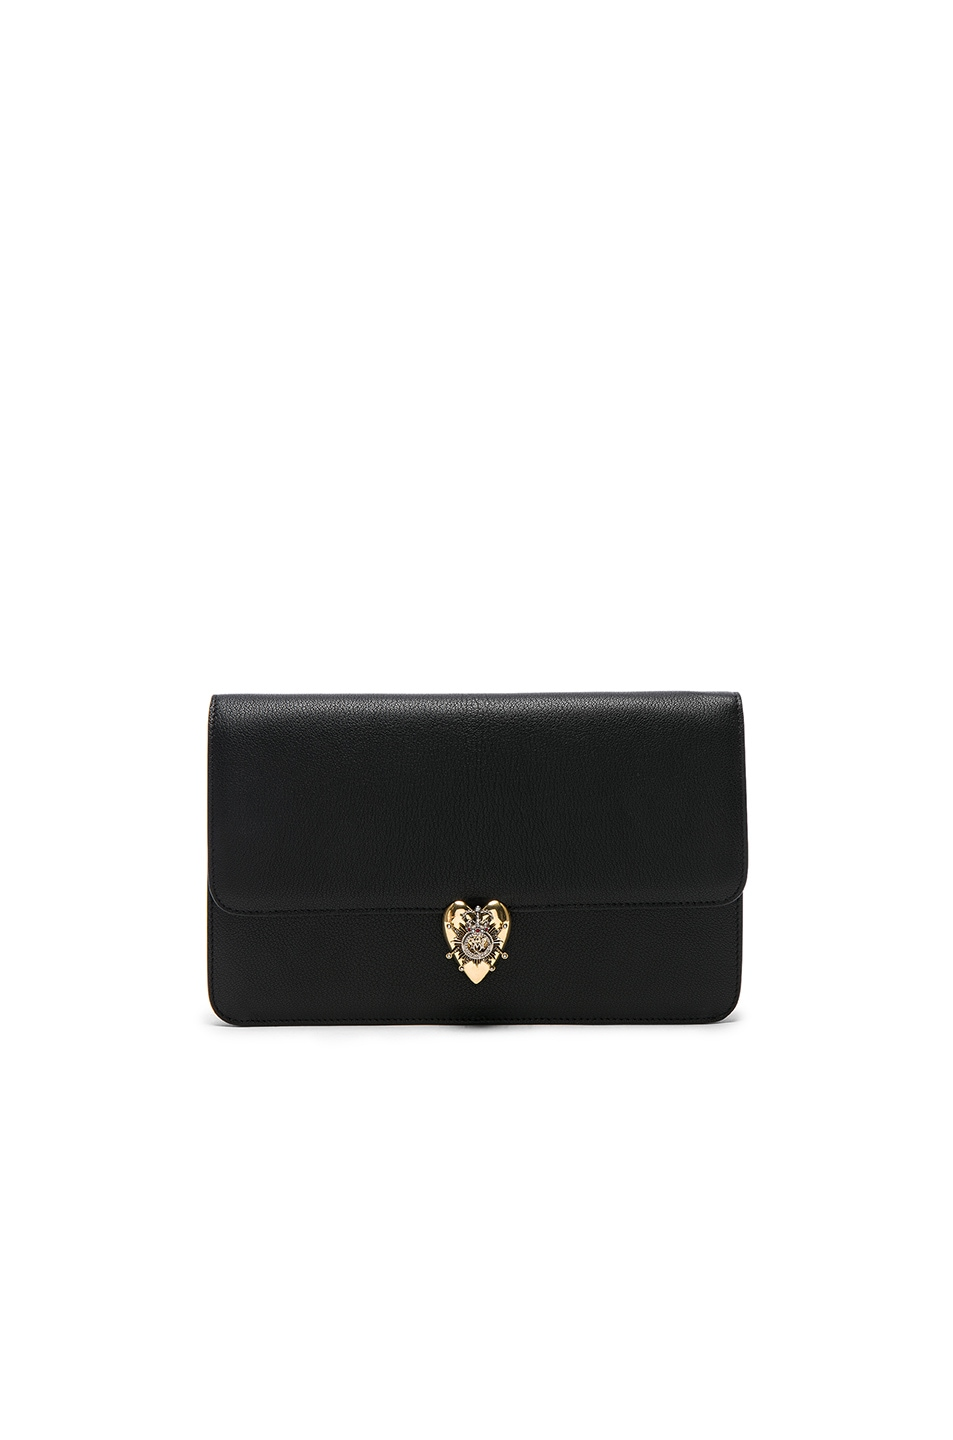 Image 1 of Alexander McQueen Heart Envelope Clutch in Black